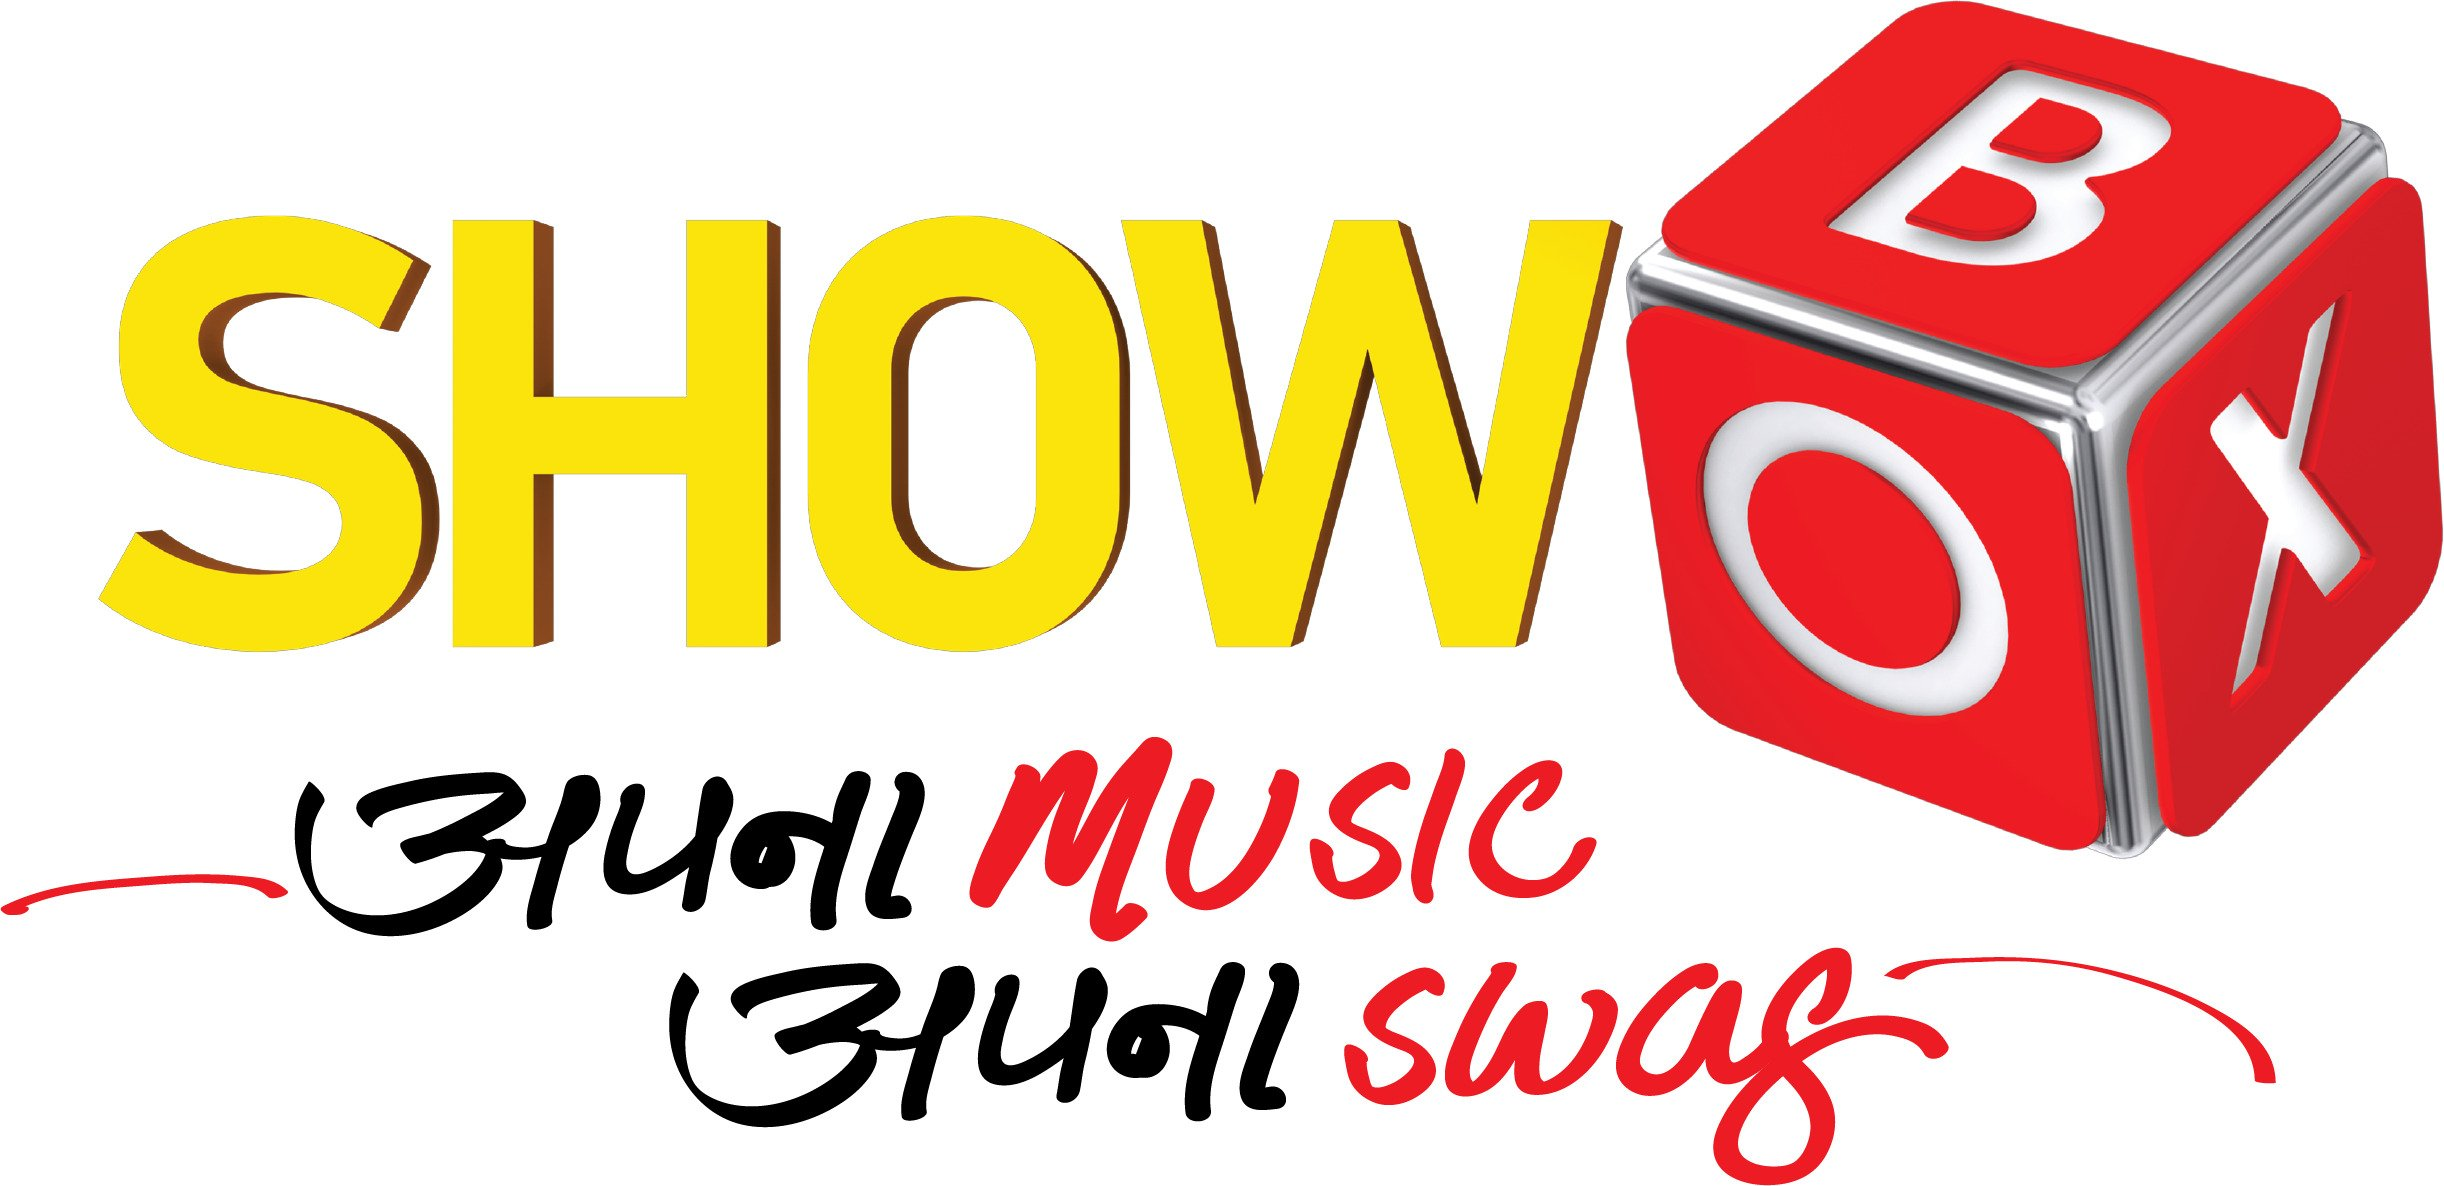 Showbox – Apna Music, Apna Swag! IN10 Media set to launch youth-centric music channel